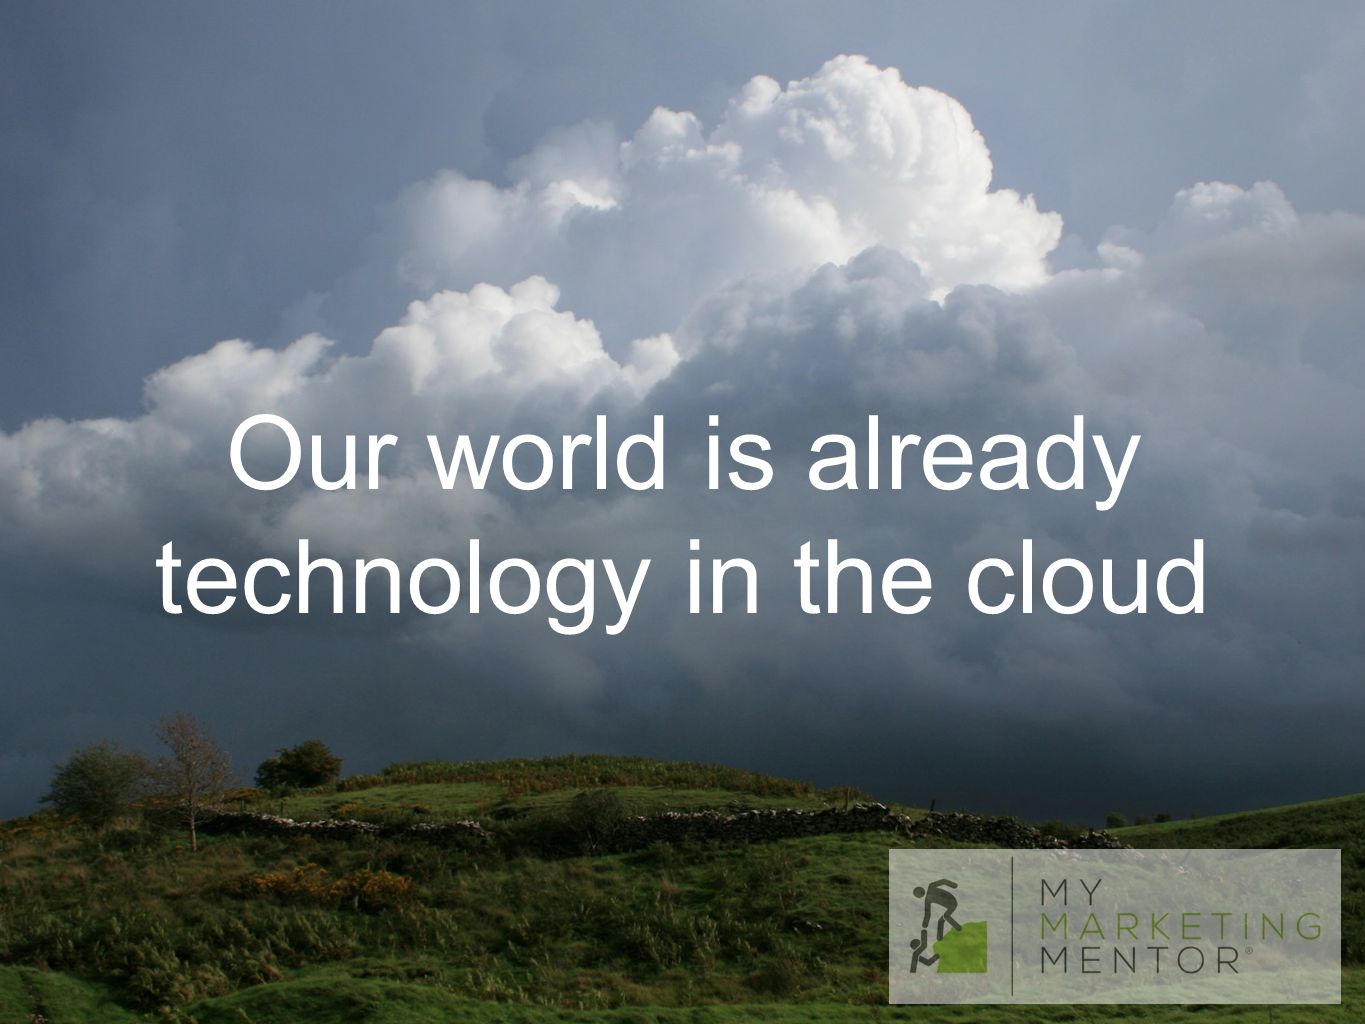 Our world is already technology in the cloud